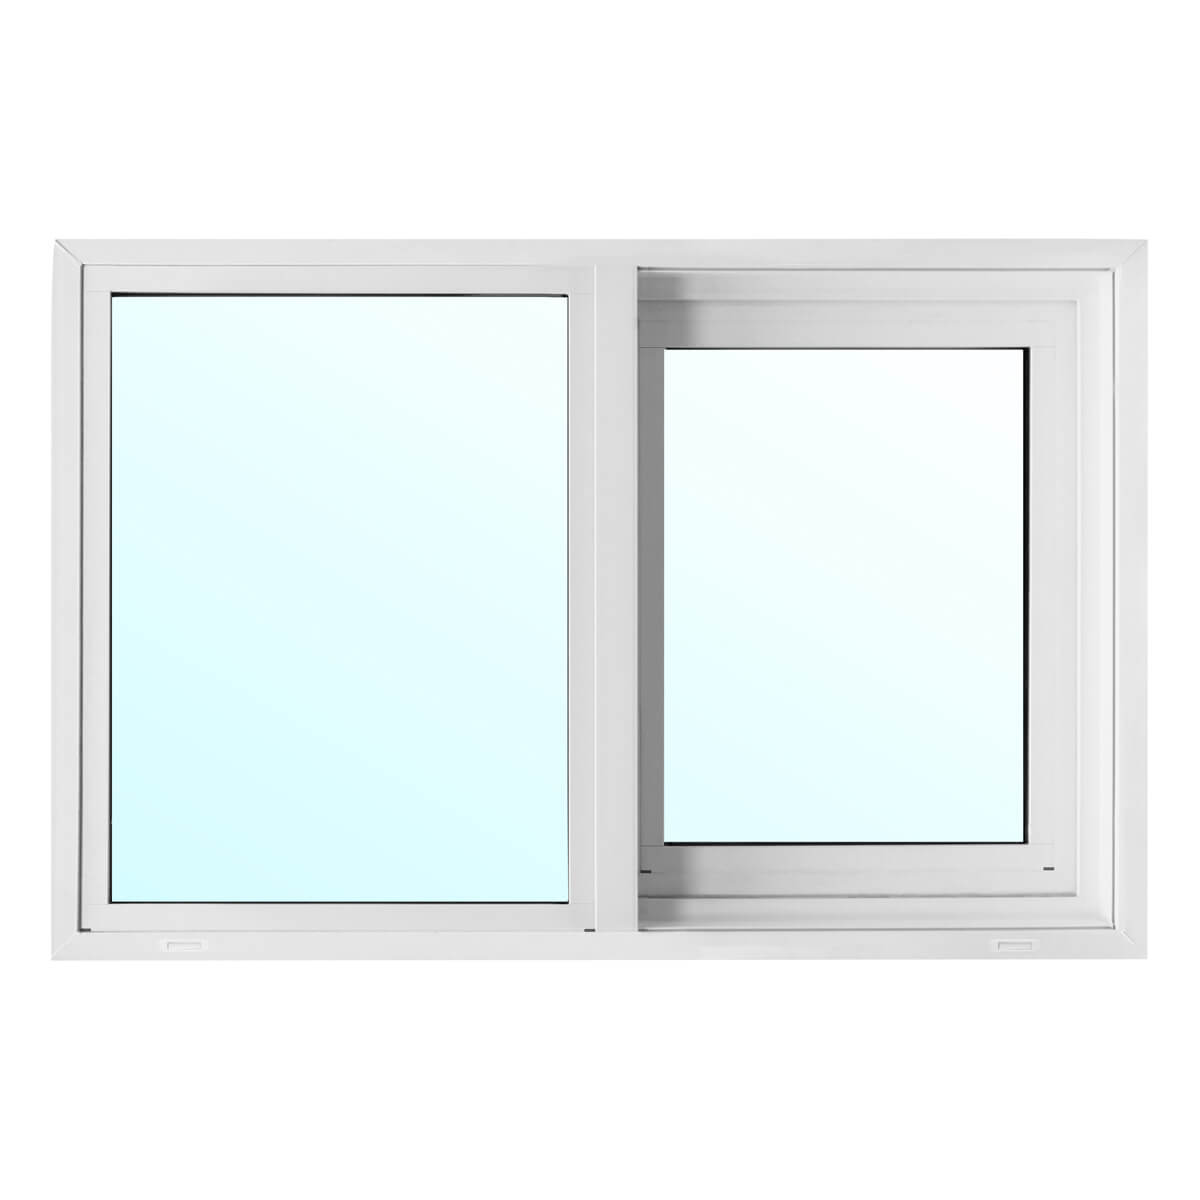 Metro PVC Slider Window with 2-1/8-in Jamb - Low-E Glass - 36-in x 30-in